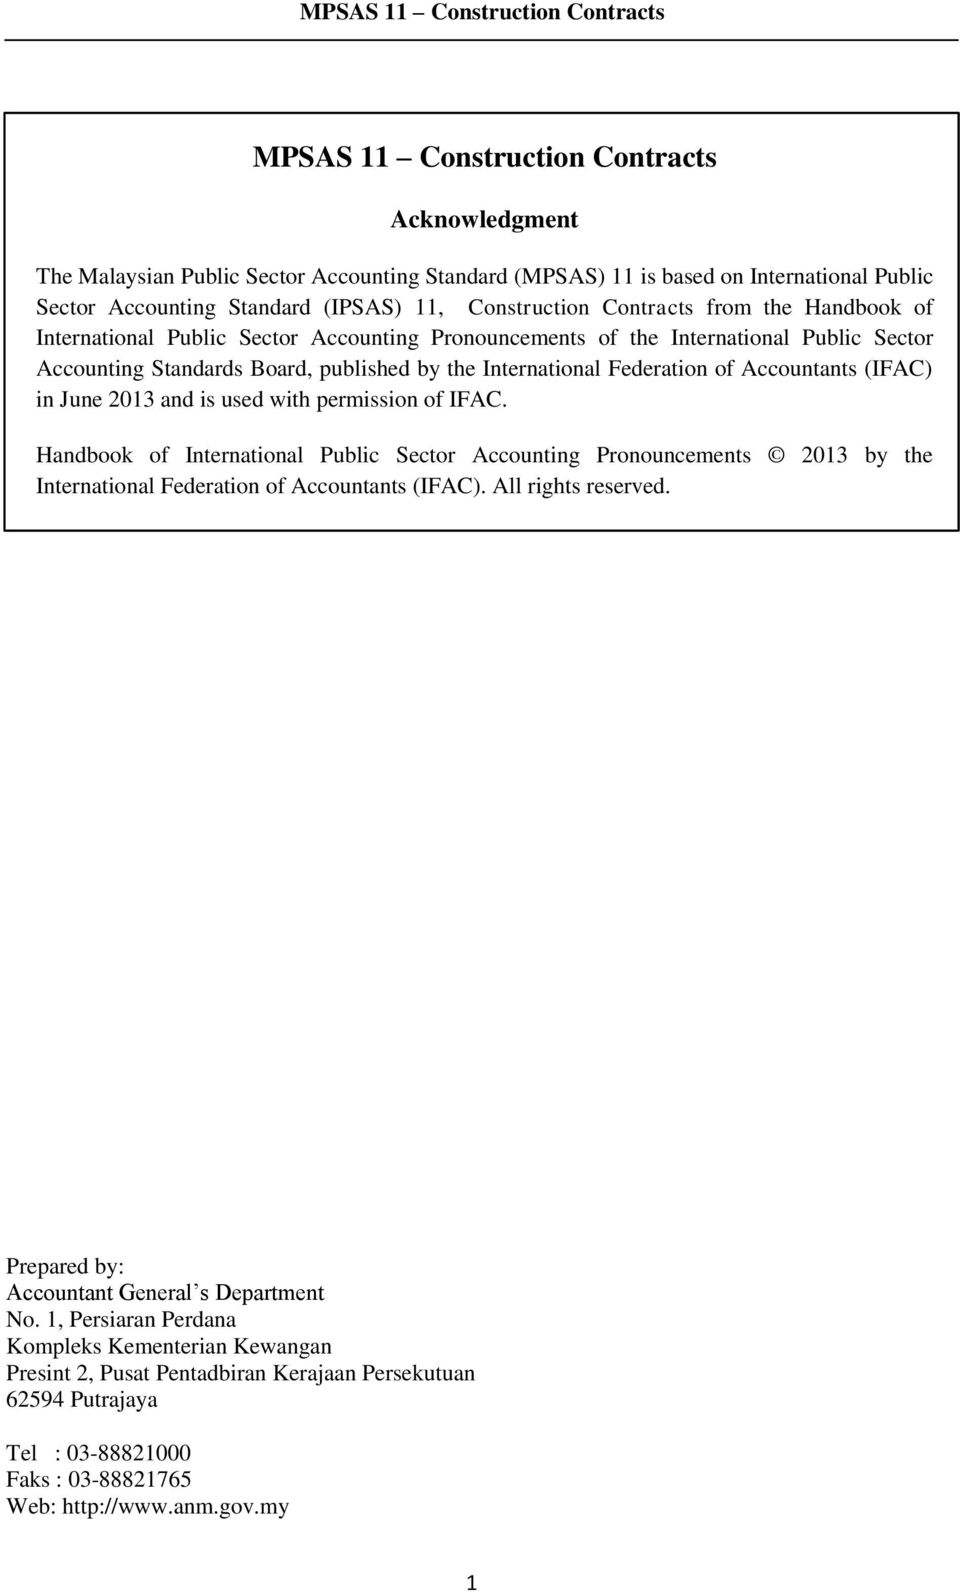 Accountants (IFAC) in June 2013 and is used with permission of IFAC. Handbook of International Public Sector Accounting Pronouncements 2013 by the International Federation of Accountants (IFAC).